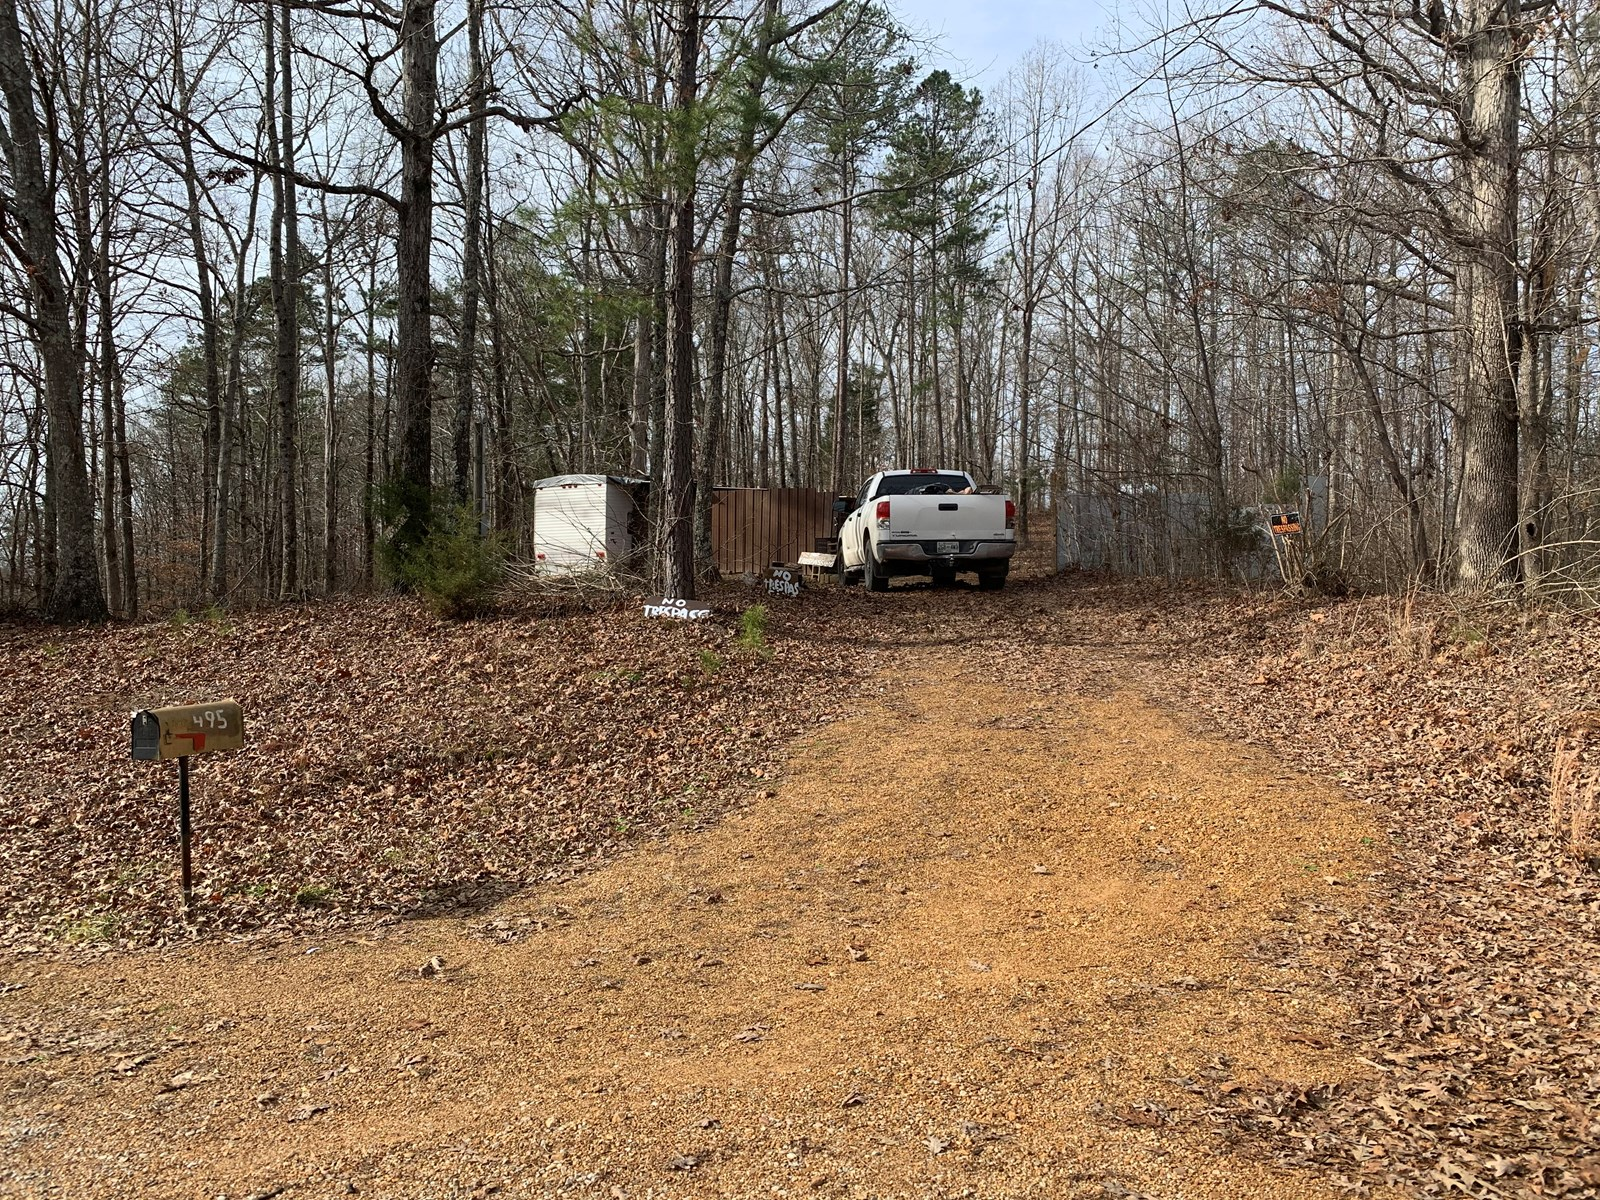 PRIVATE WOODED LAND FOR SALE IN TENNESSEE WITH CAMPER